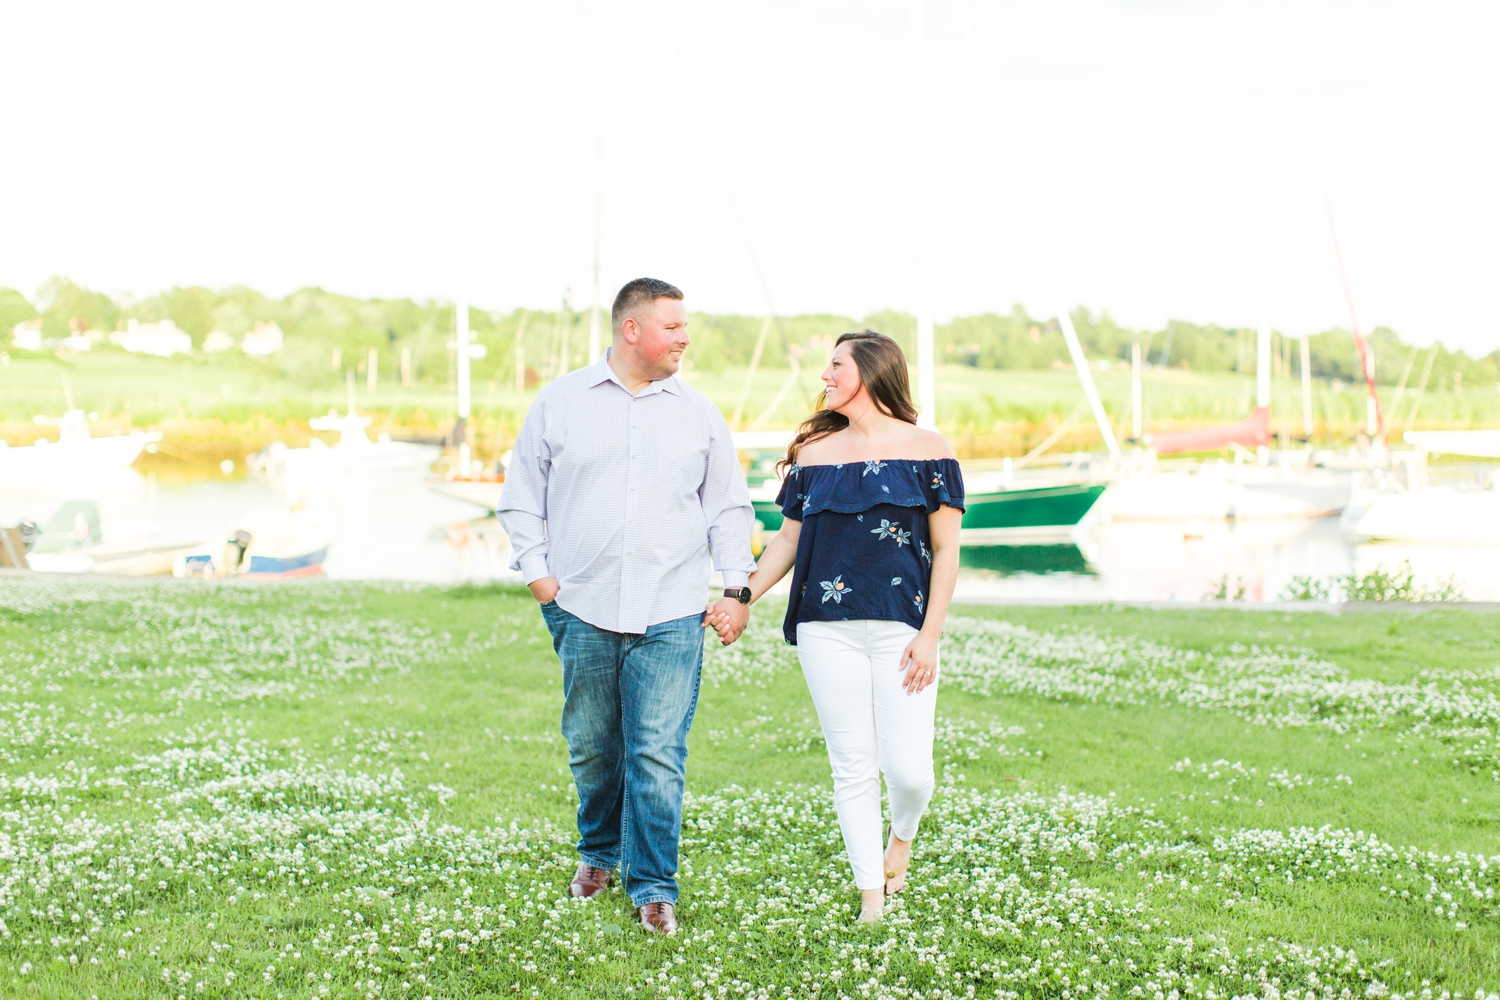 pequot-yacht-club-engagement-session-southport-connecticut-wedding-photographer-shaina-lee-photography-photo-14.jpg